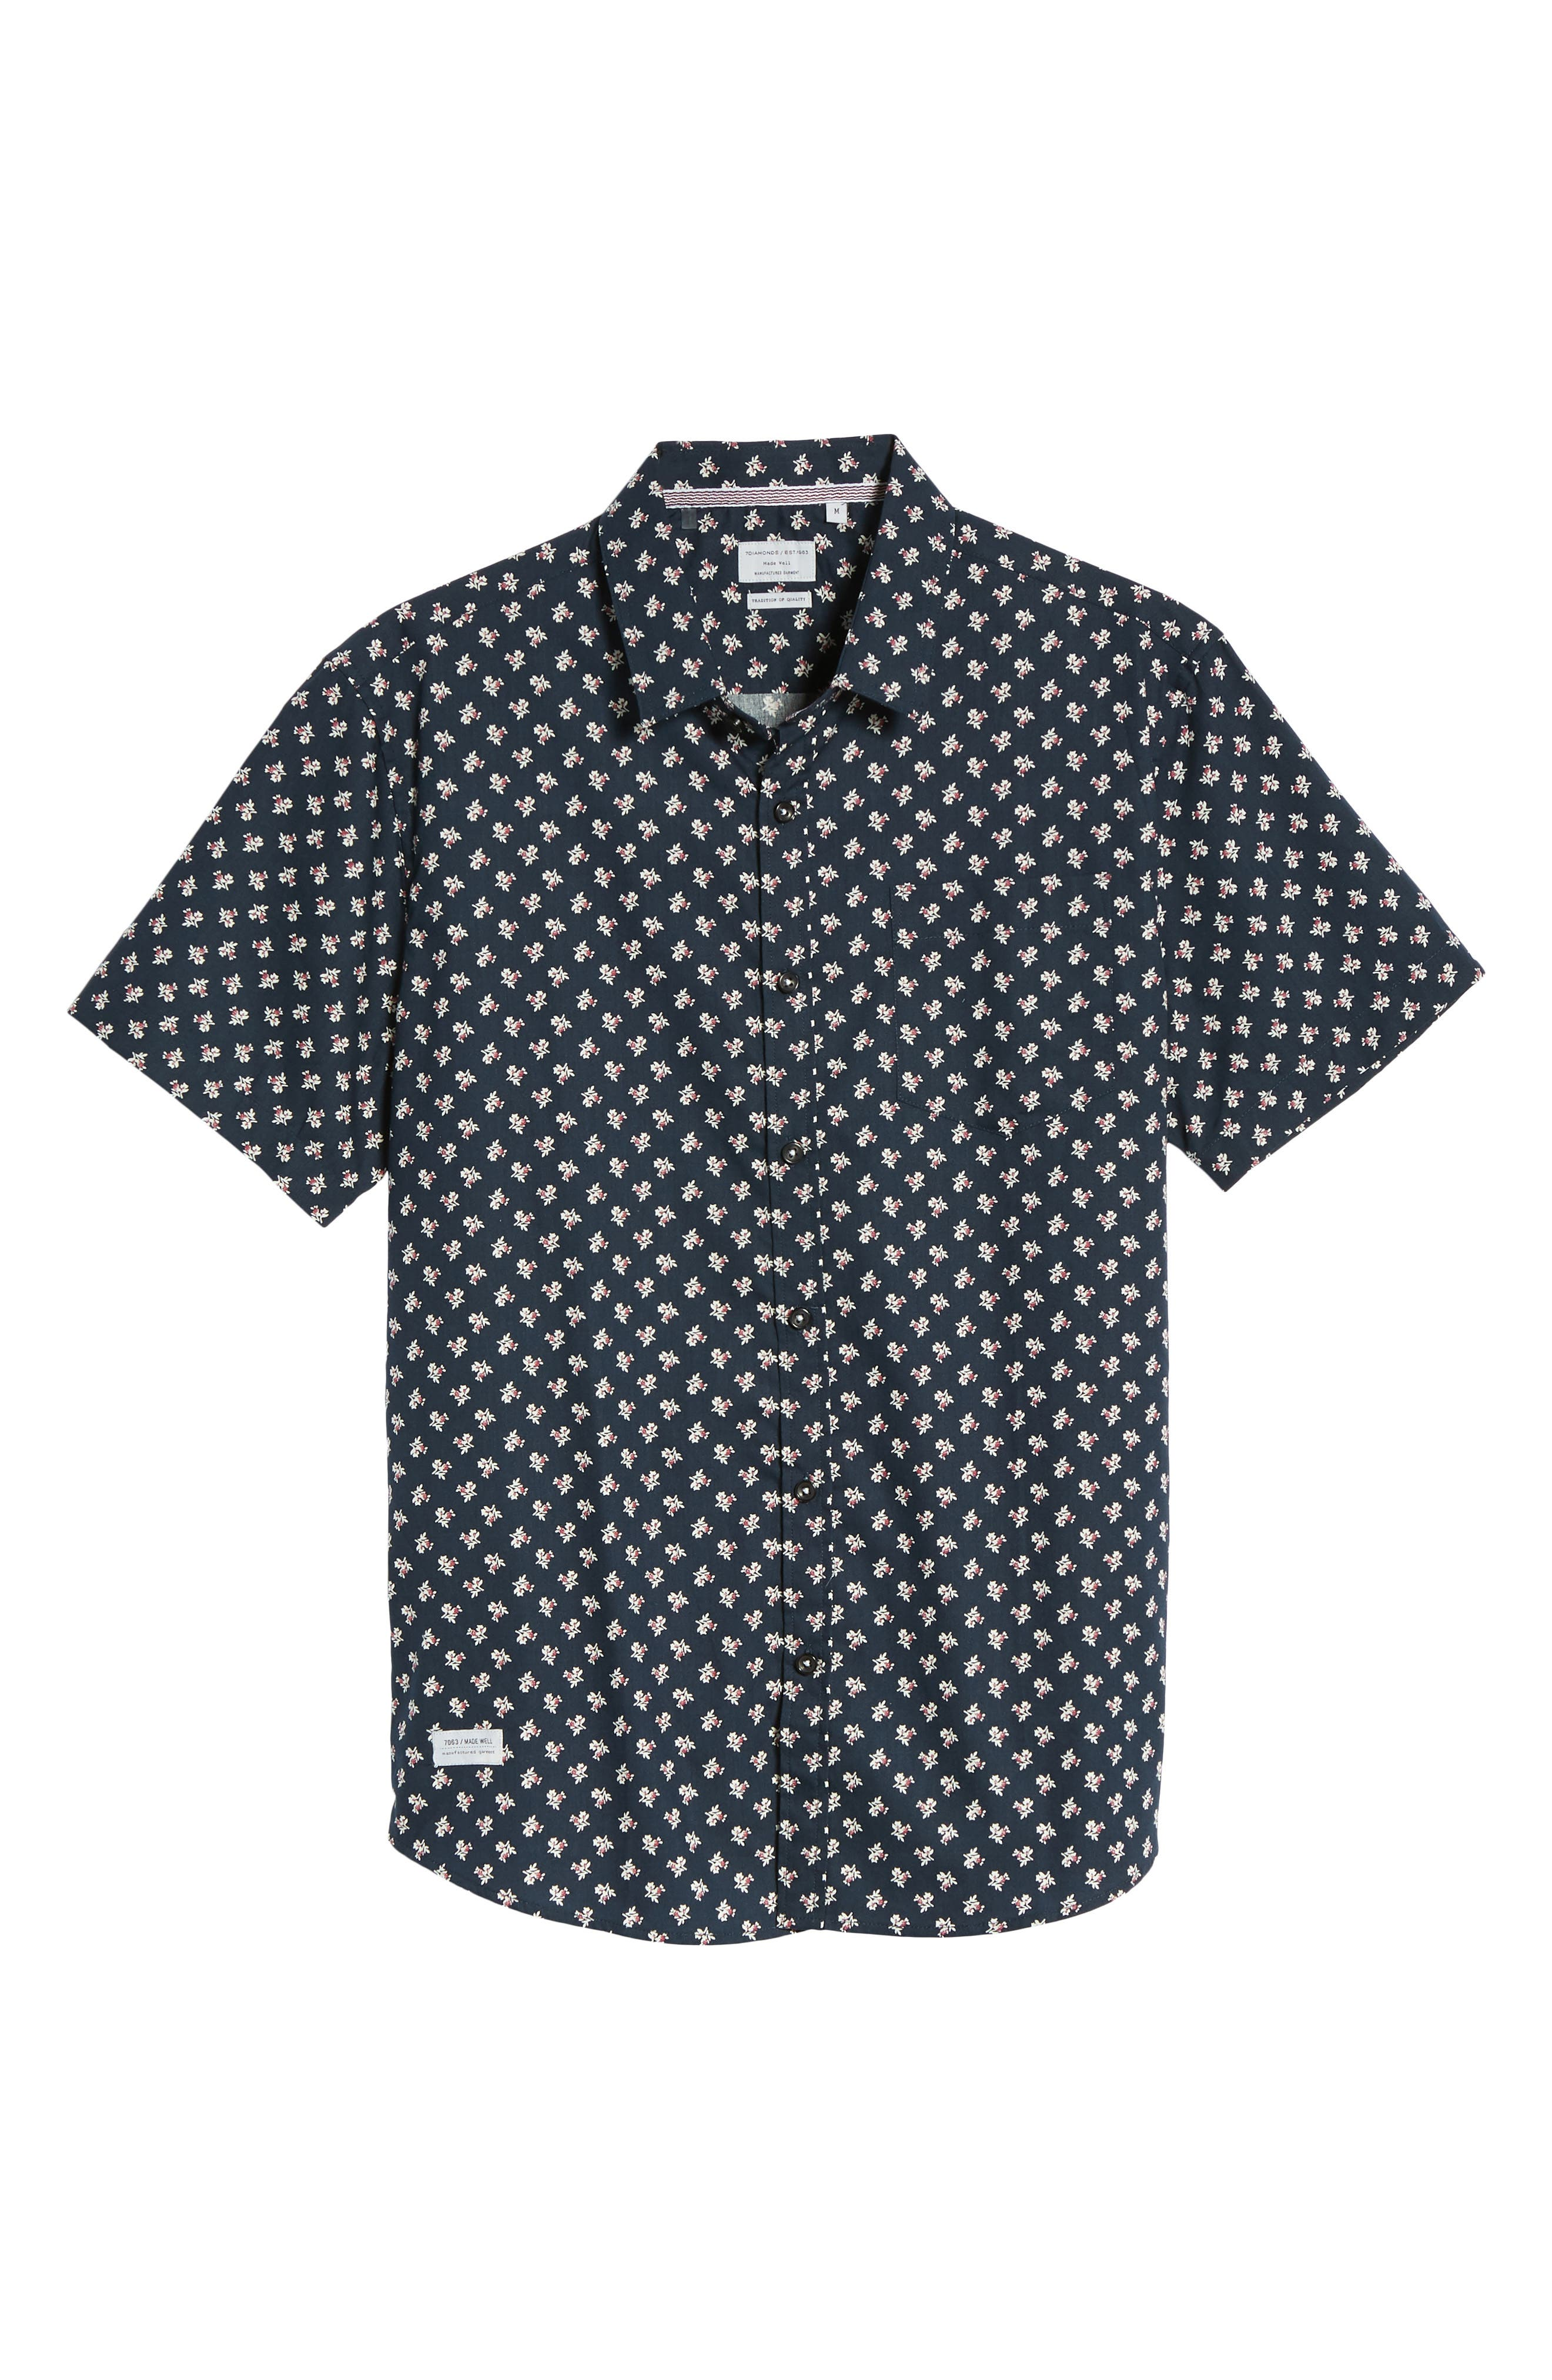 'Crossfire' Floral Print Short Sleeve Woven Shirt,                             Alternate thumbnail 11, color,